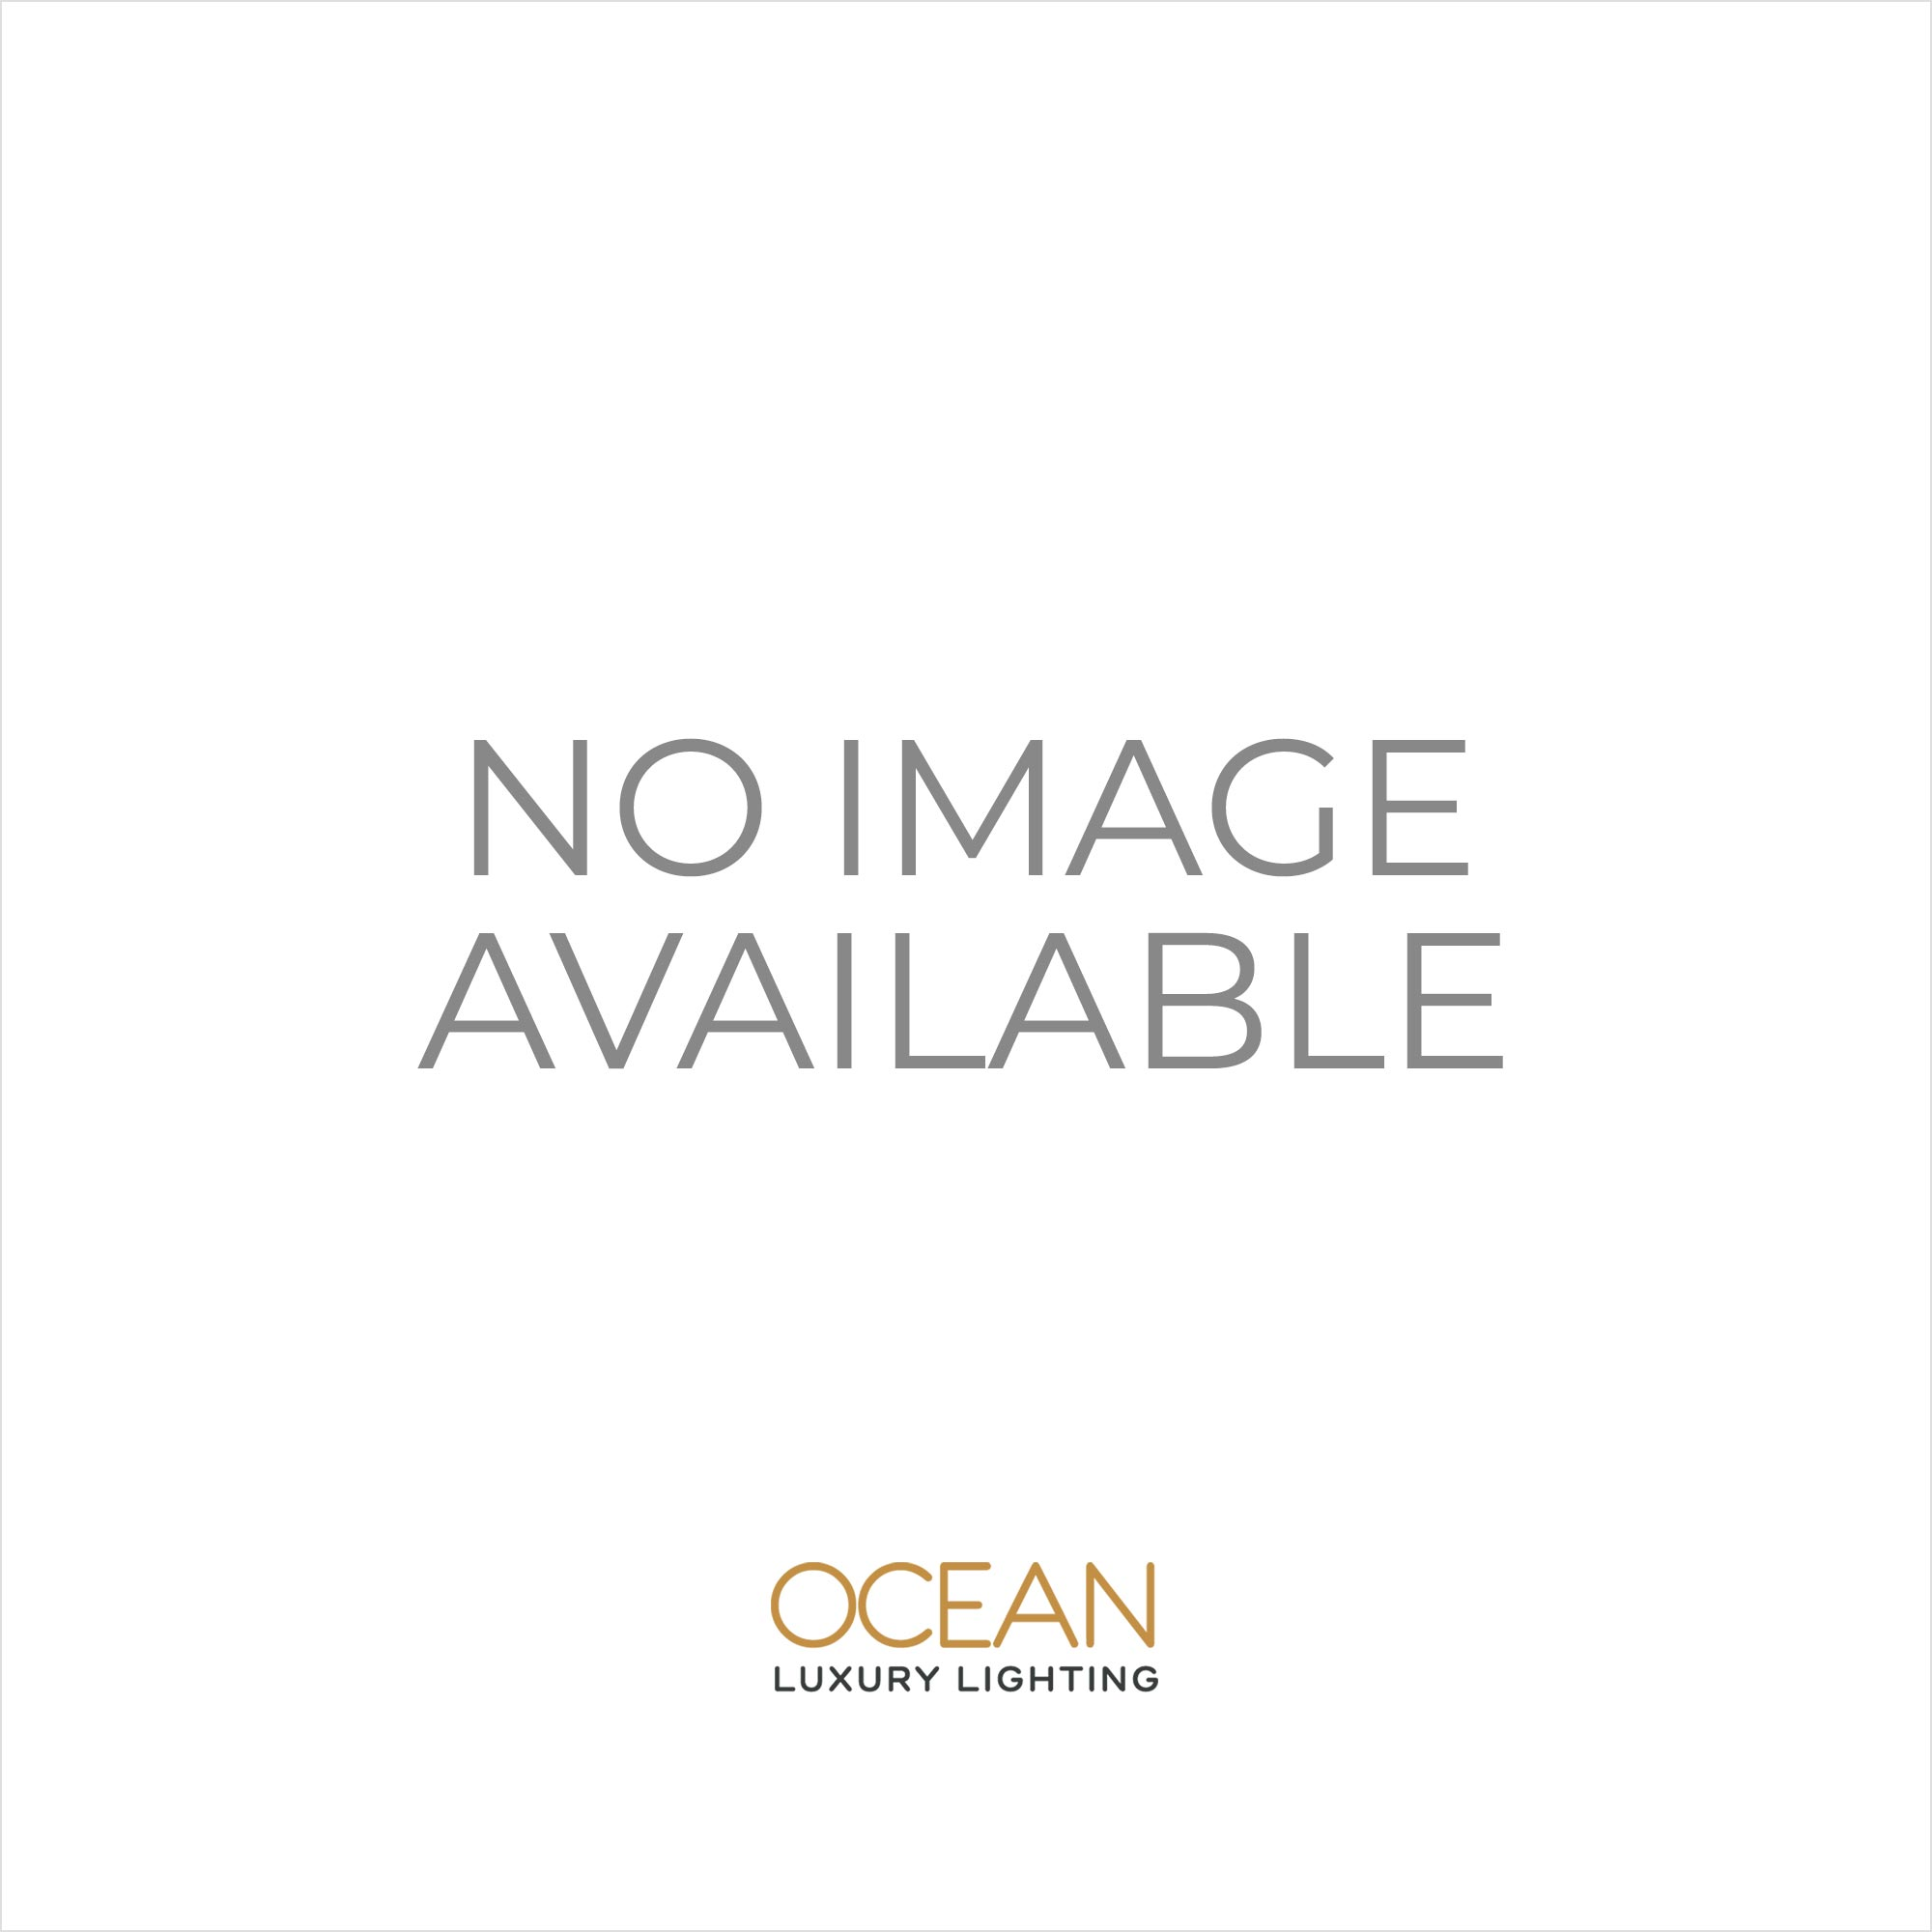 EL-10094 LED Cabinet Light Kit Stainless Steel (set of 3)